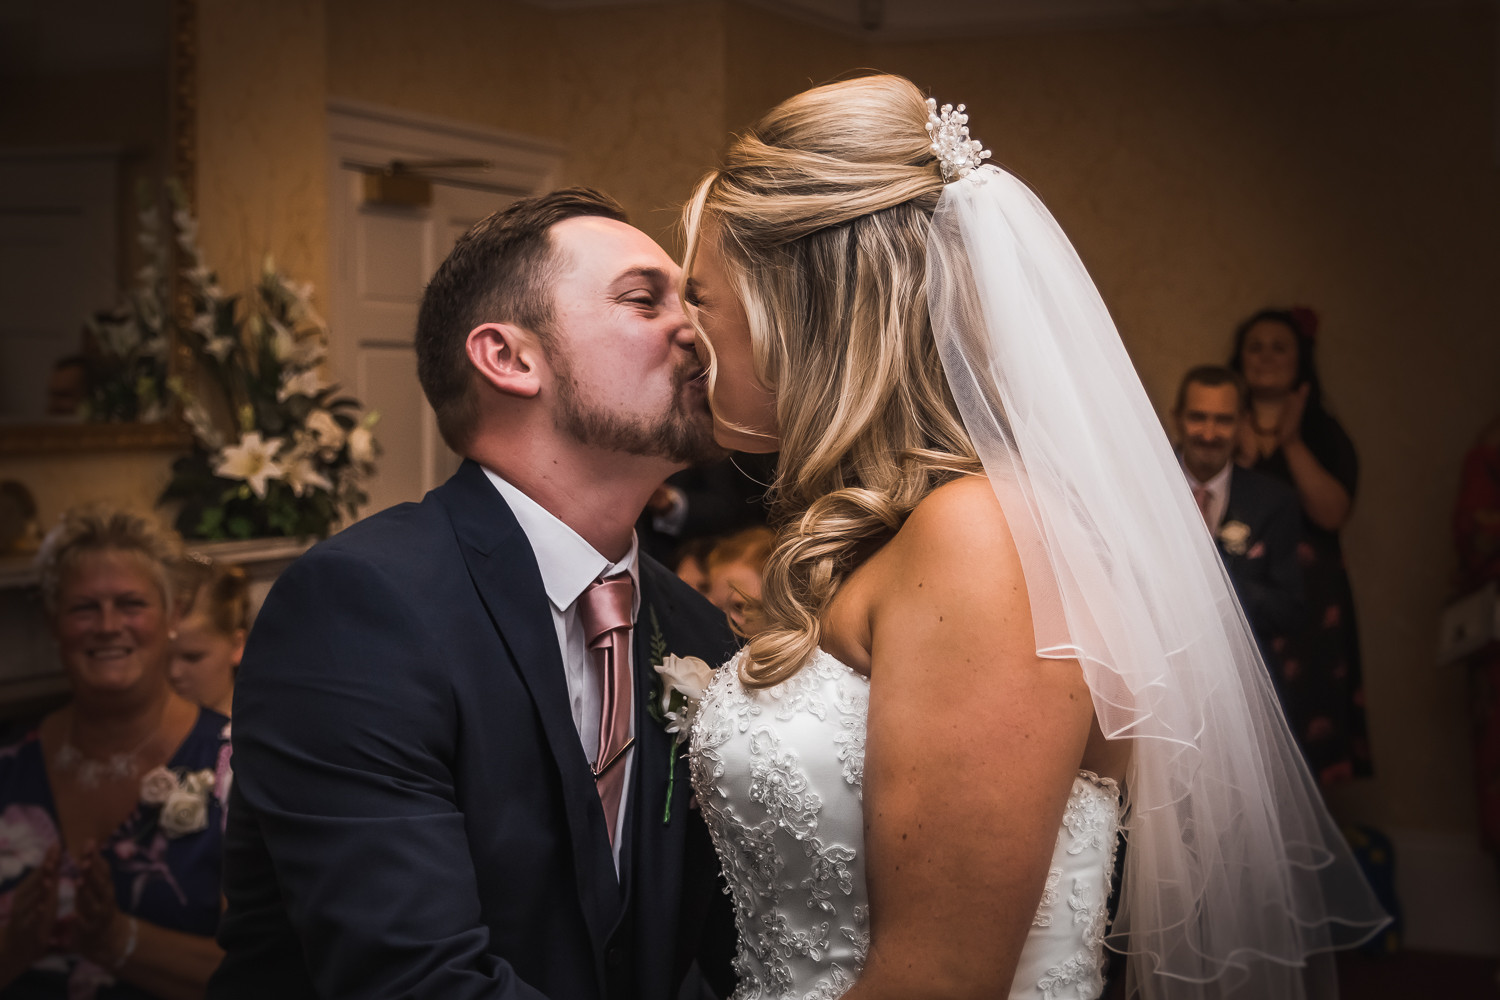 A bride and groom kiss during their wedding ceremony.